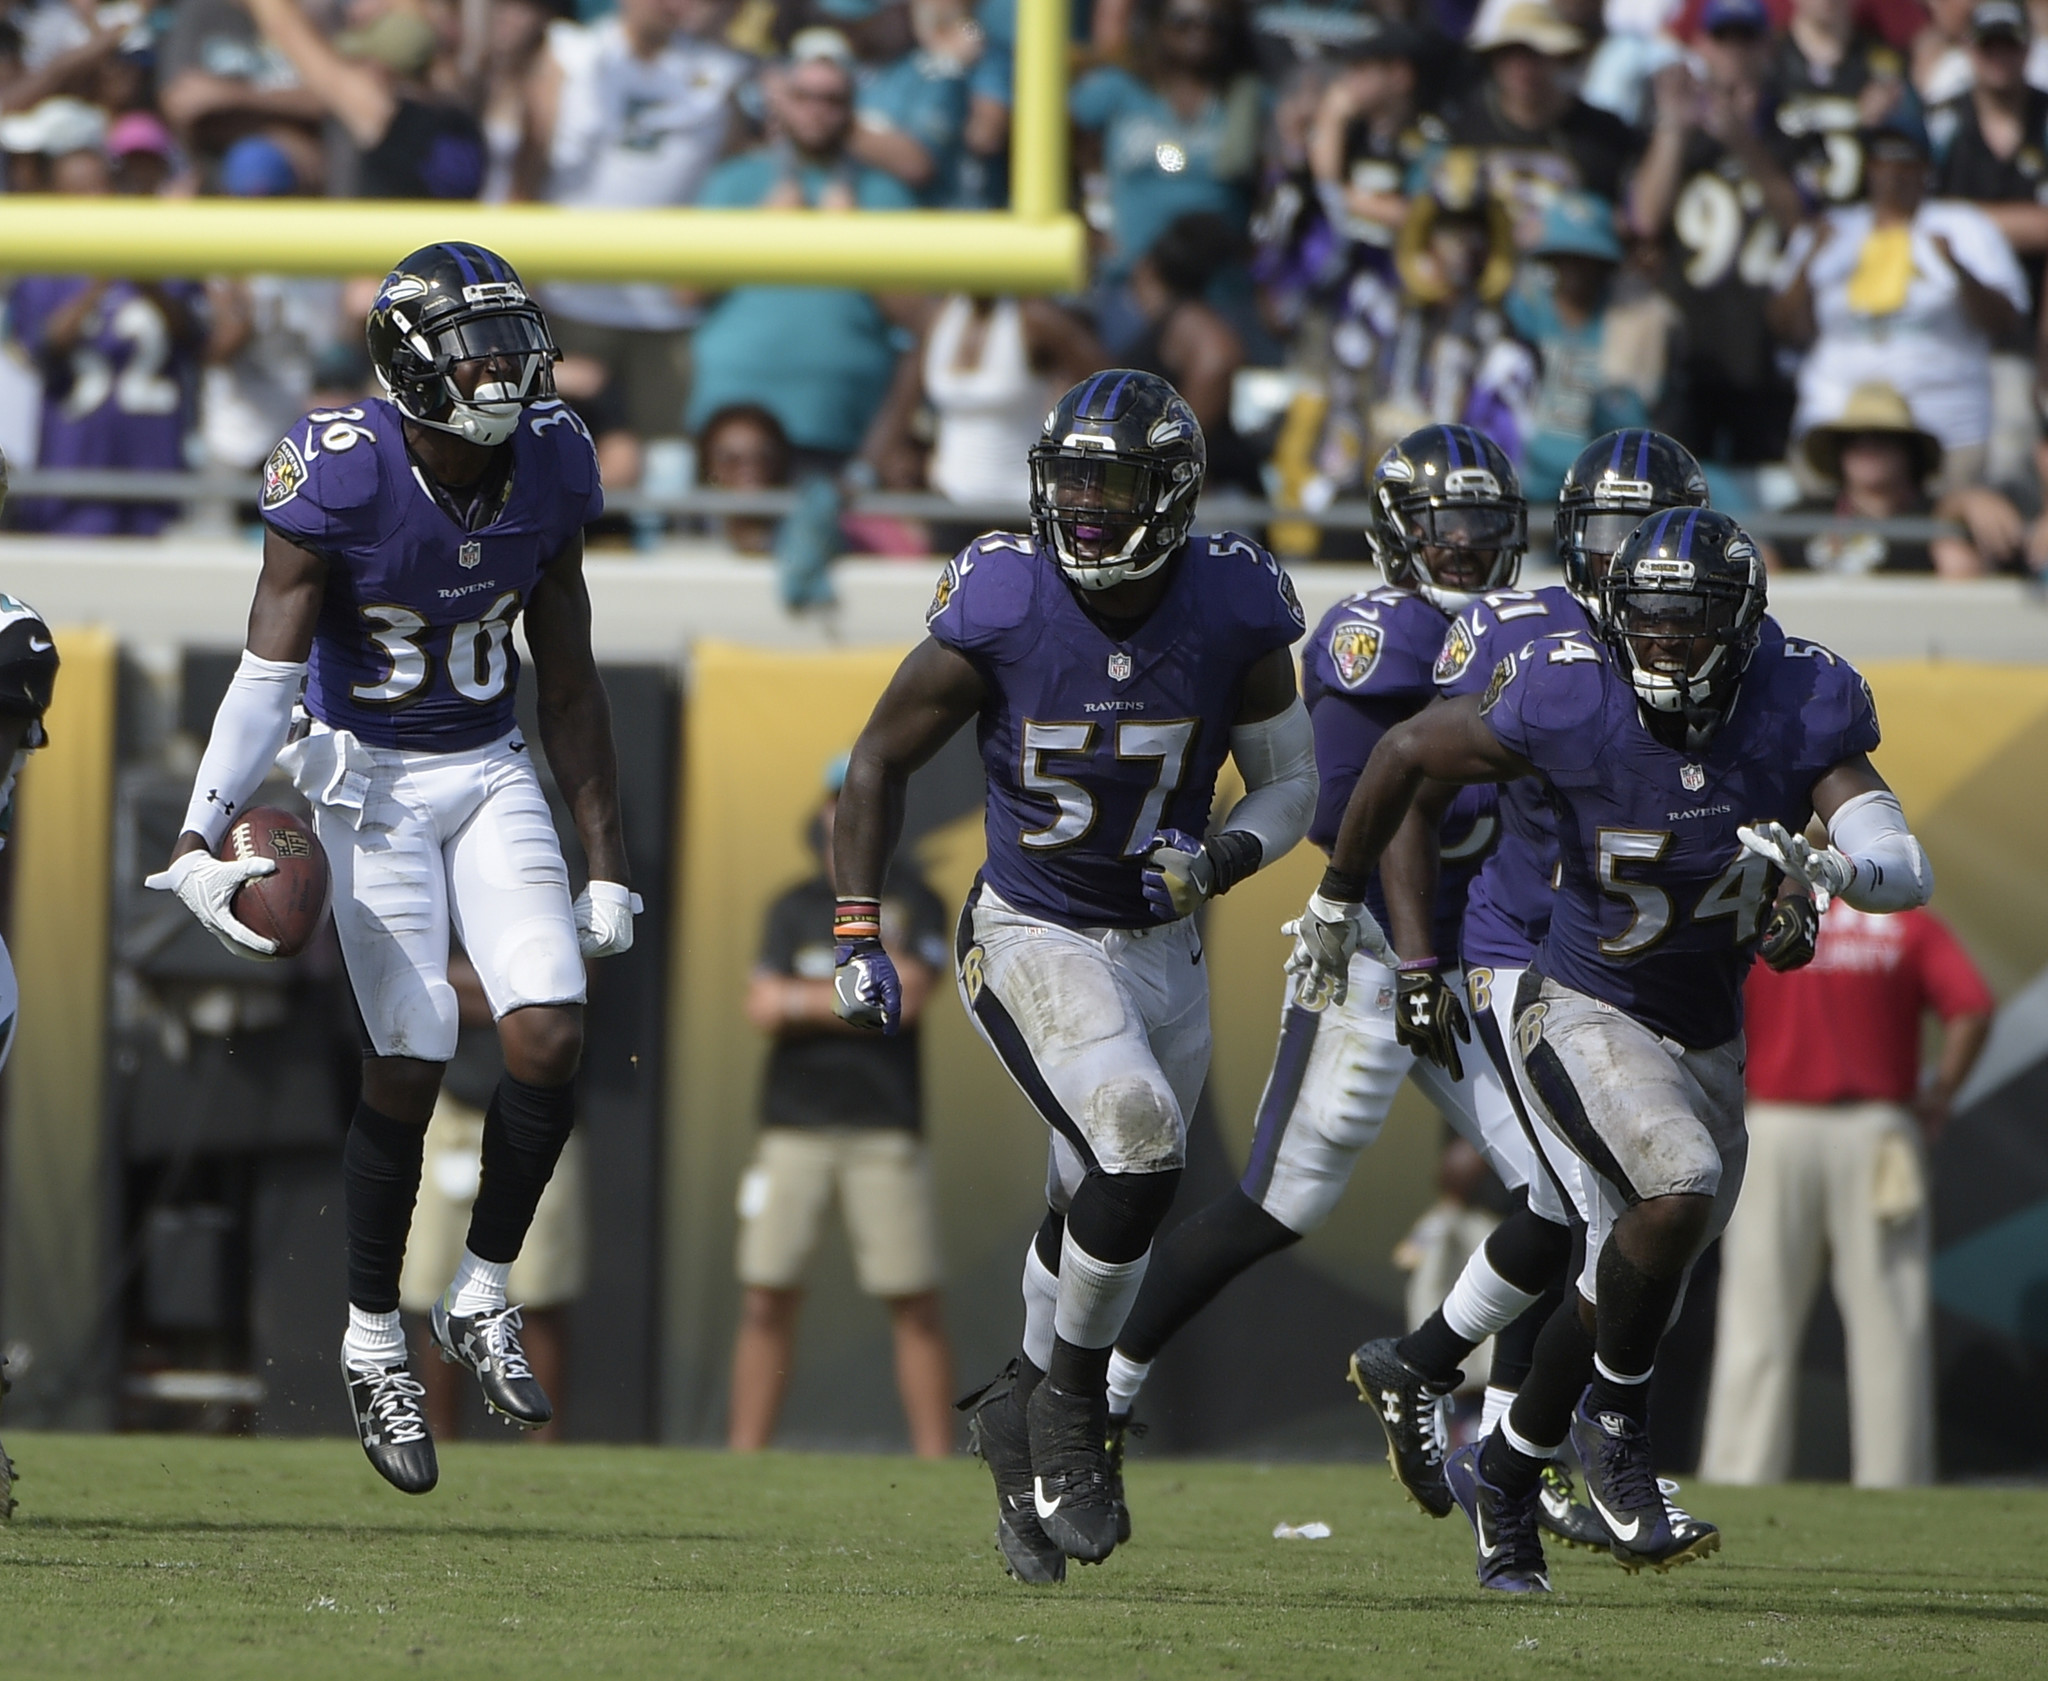 Bal-ravens-news-notes-and-opinions-20160926